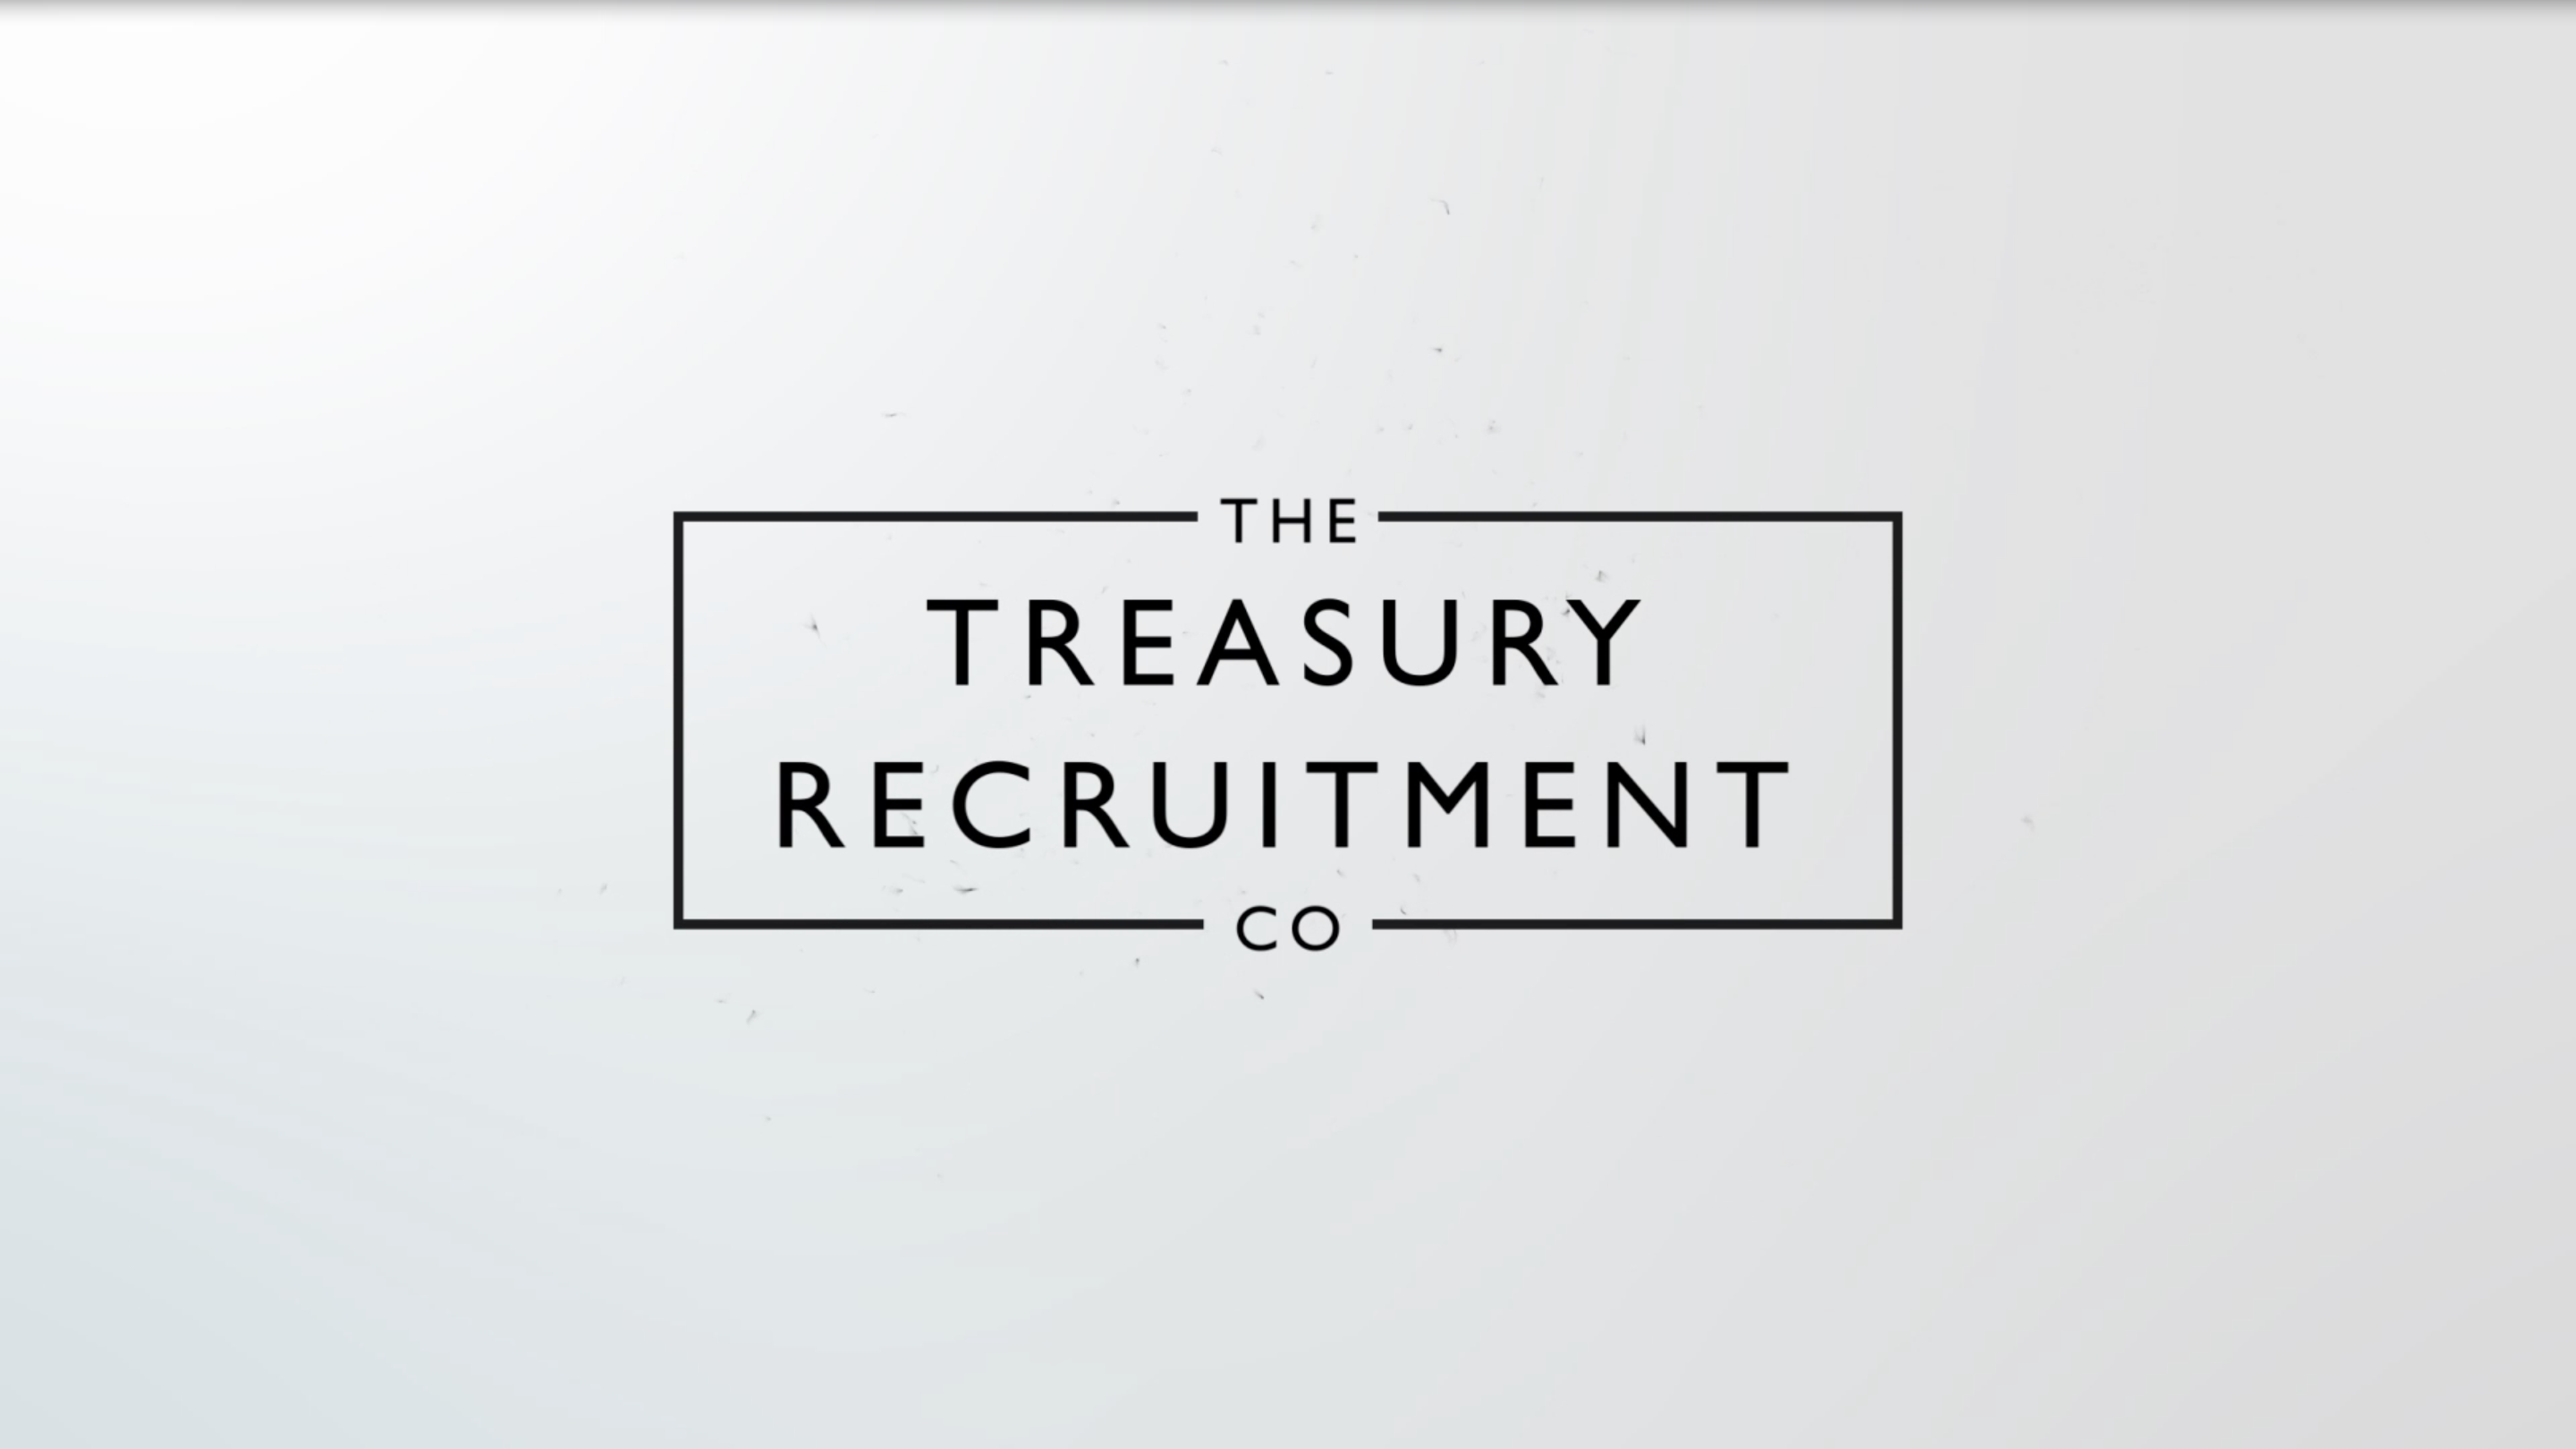 The Treasury Recruitment Co